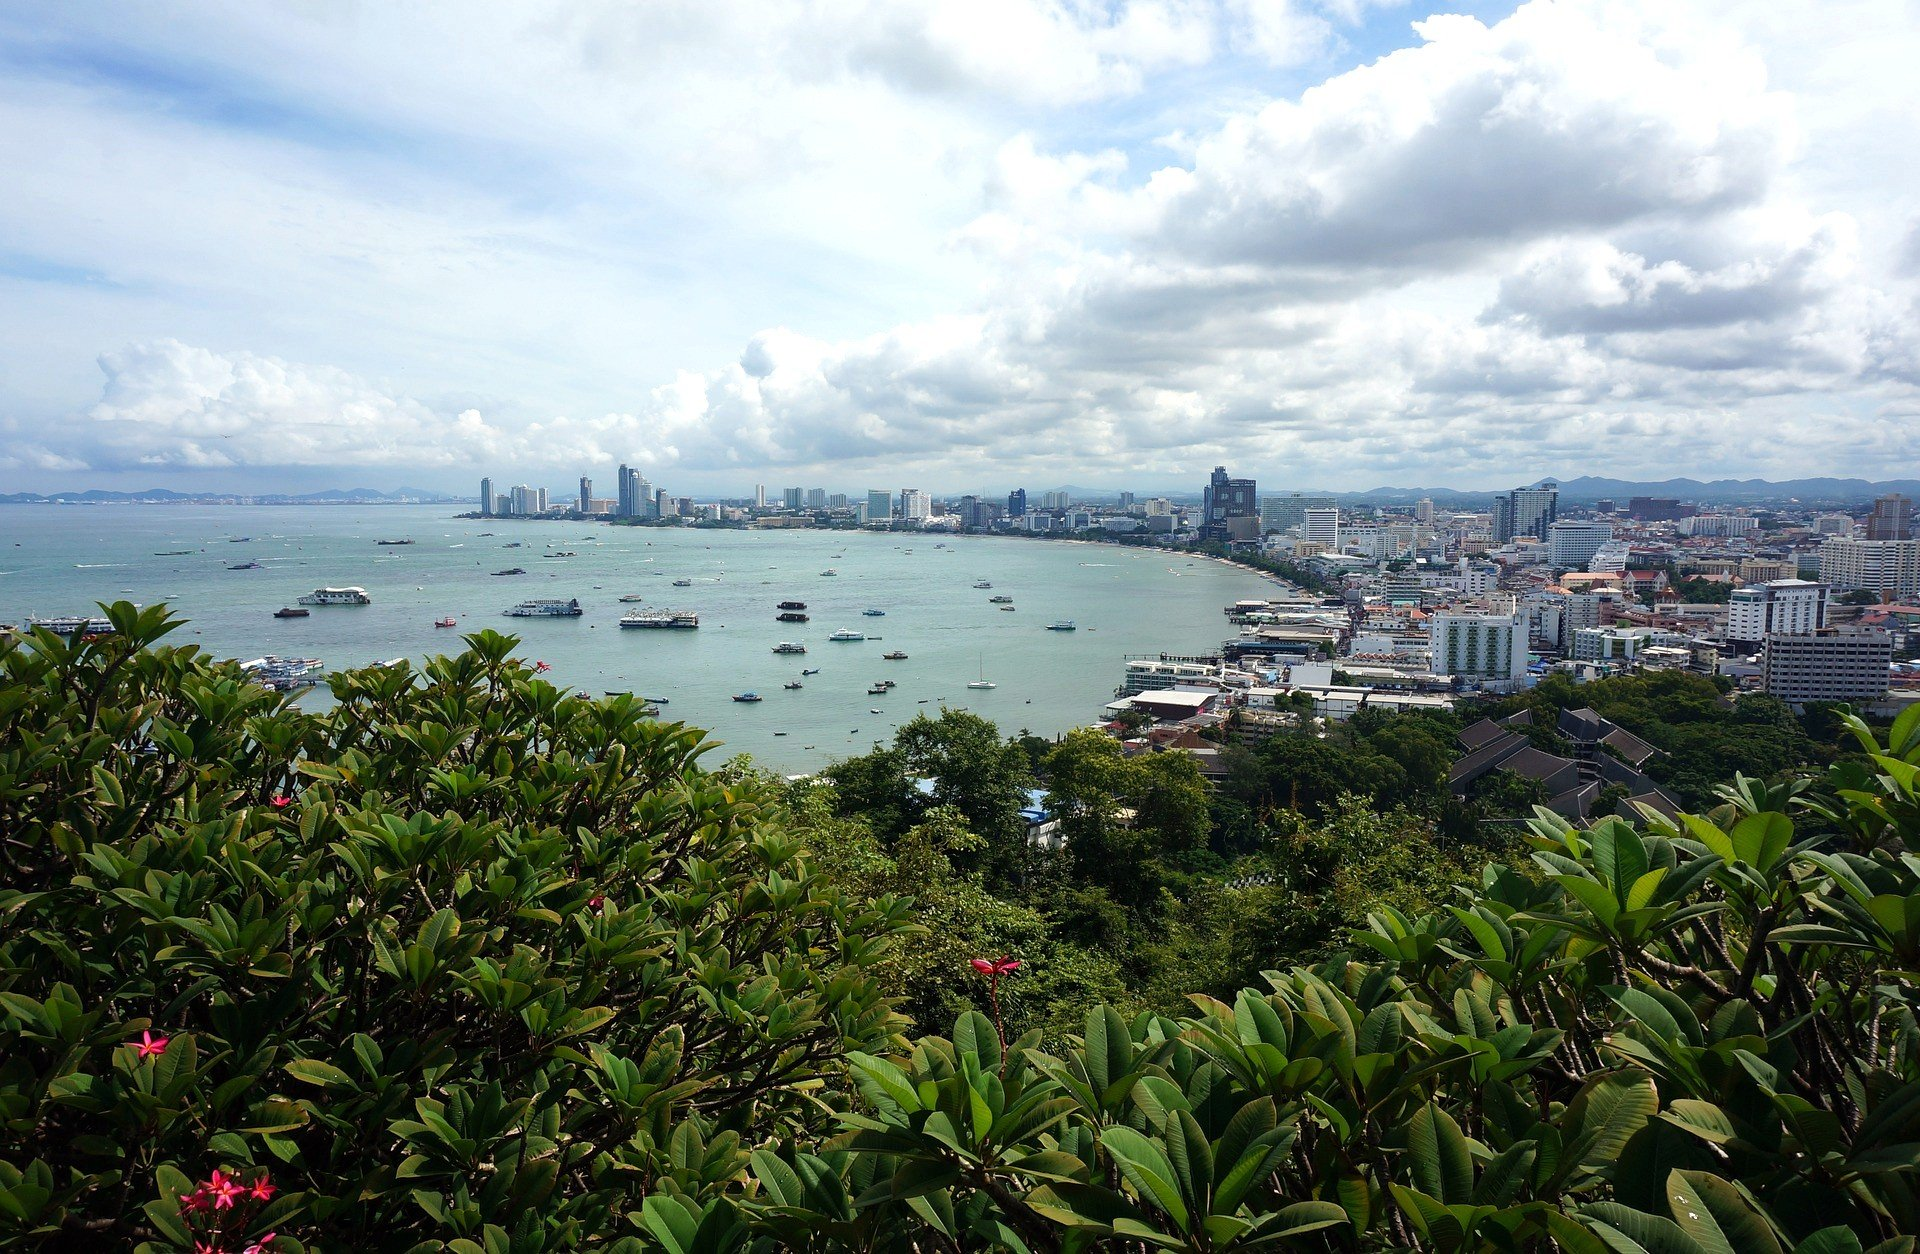 View of Pattaya City